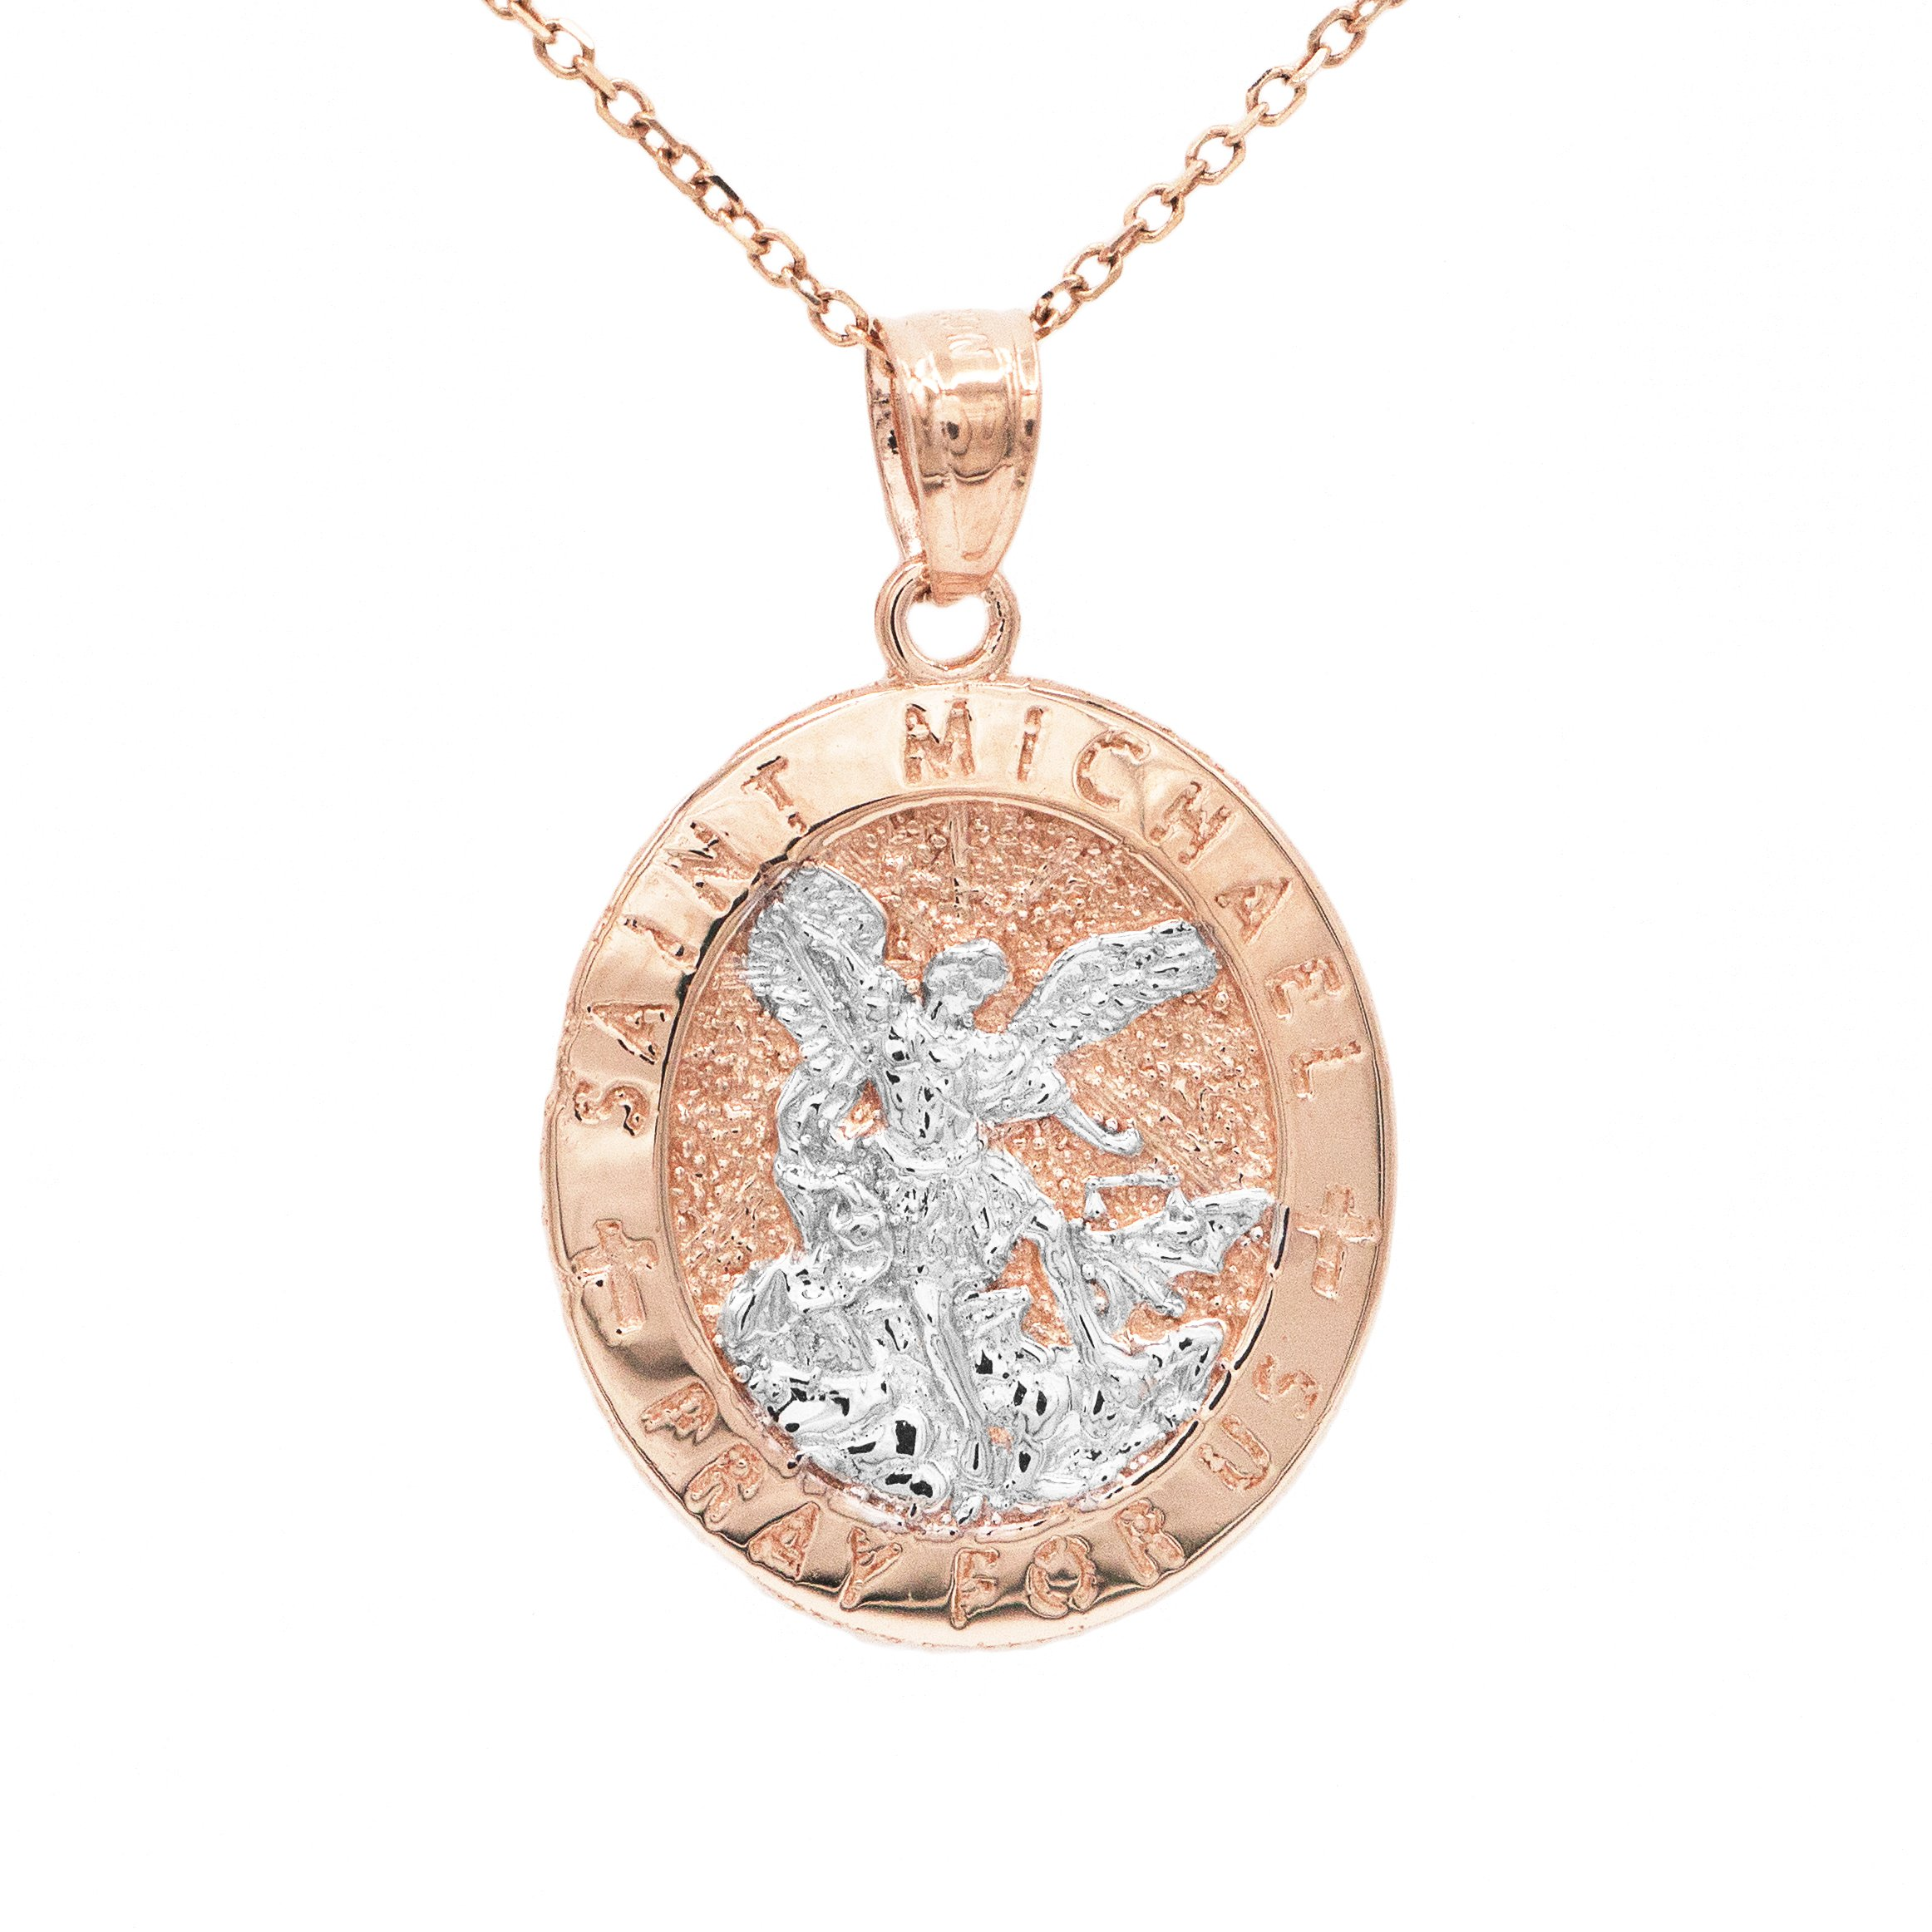 10k Solid Rose Two Tone Gold Oval Frame Saint Michael Pray For Us Medallion Necklace (20'' Mariner Chain Dipped in Holy Water) by Ice on Fire Jewelry (Image #1)